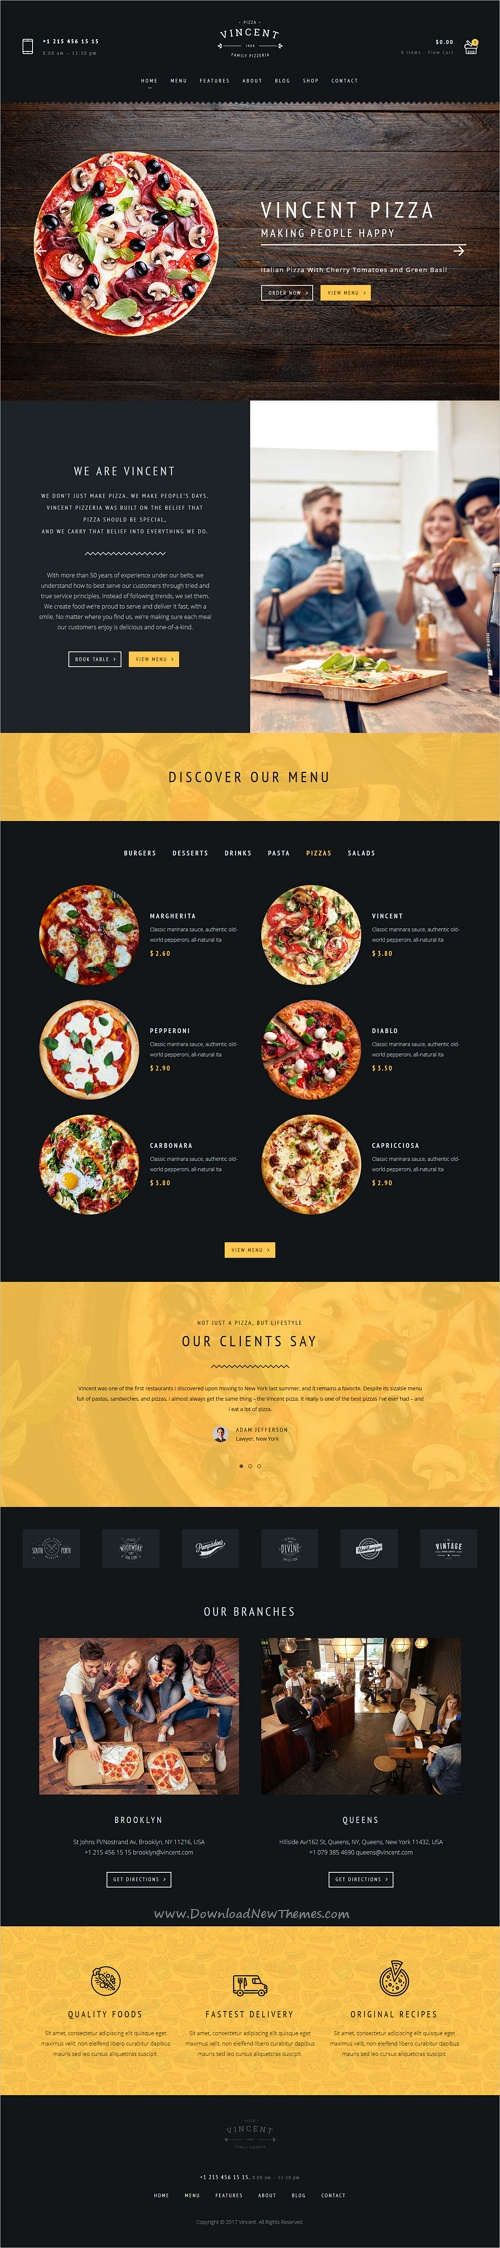 Vincent is clean and modern design 6in1 responsive #WordPress theme for #restaurant, #pizzeria cafe and food order online services website download now➩ https://themeforest.net/item/restaurant-vincent-restaurant-and-pizza-cafe/19767832?ref=Datasata